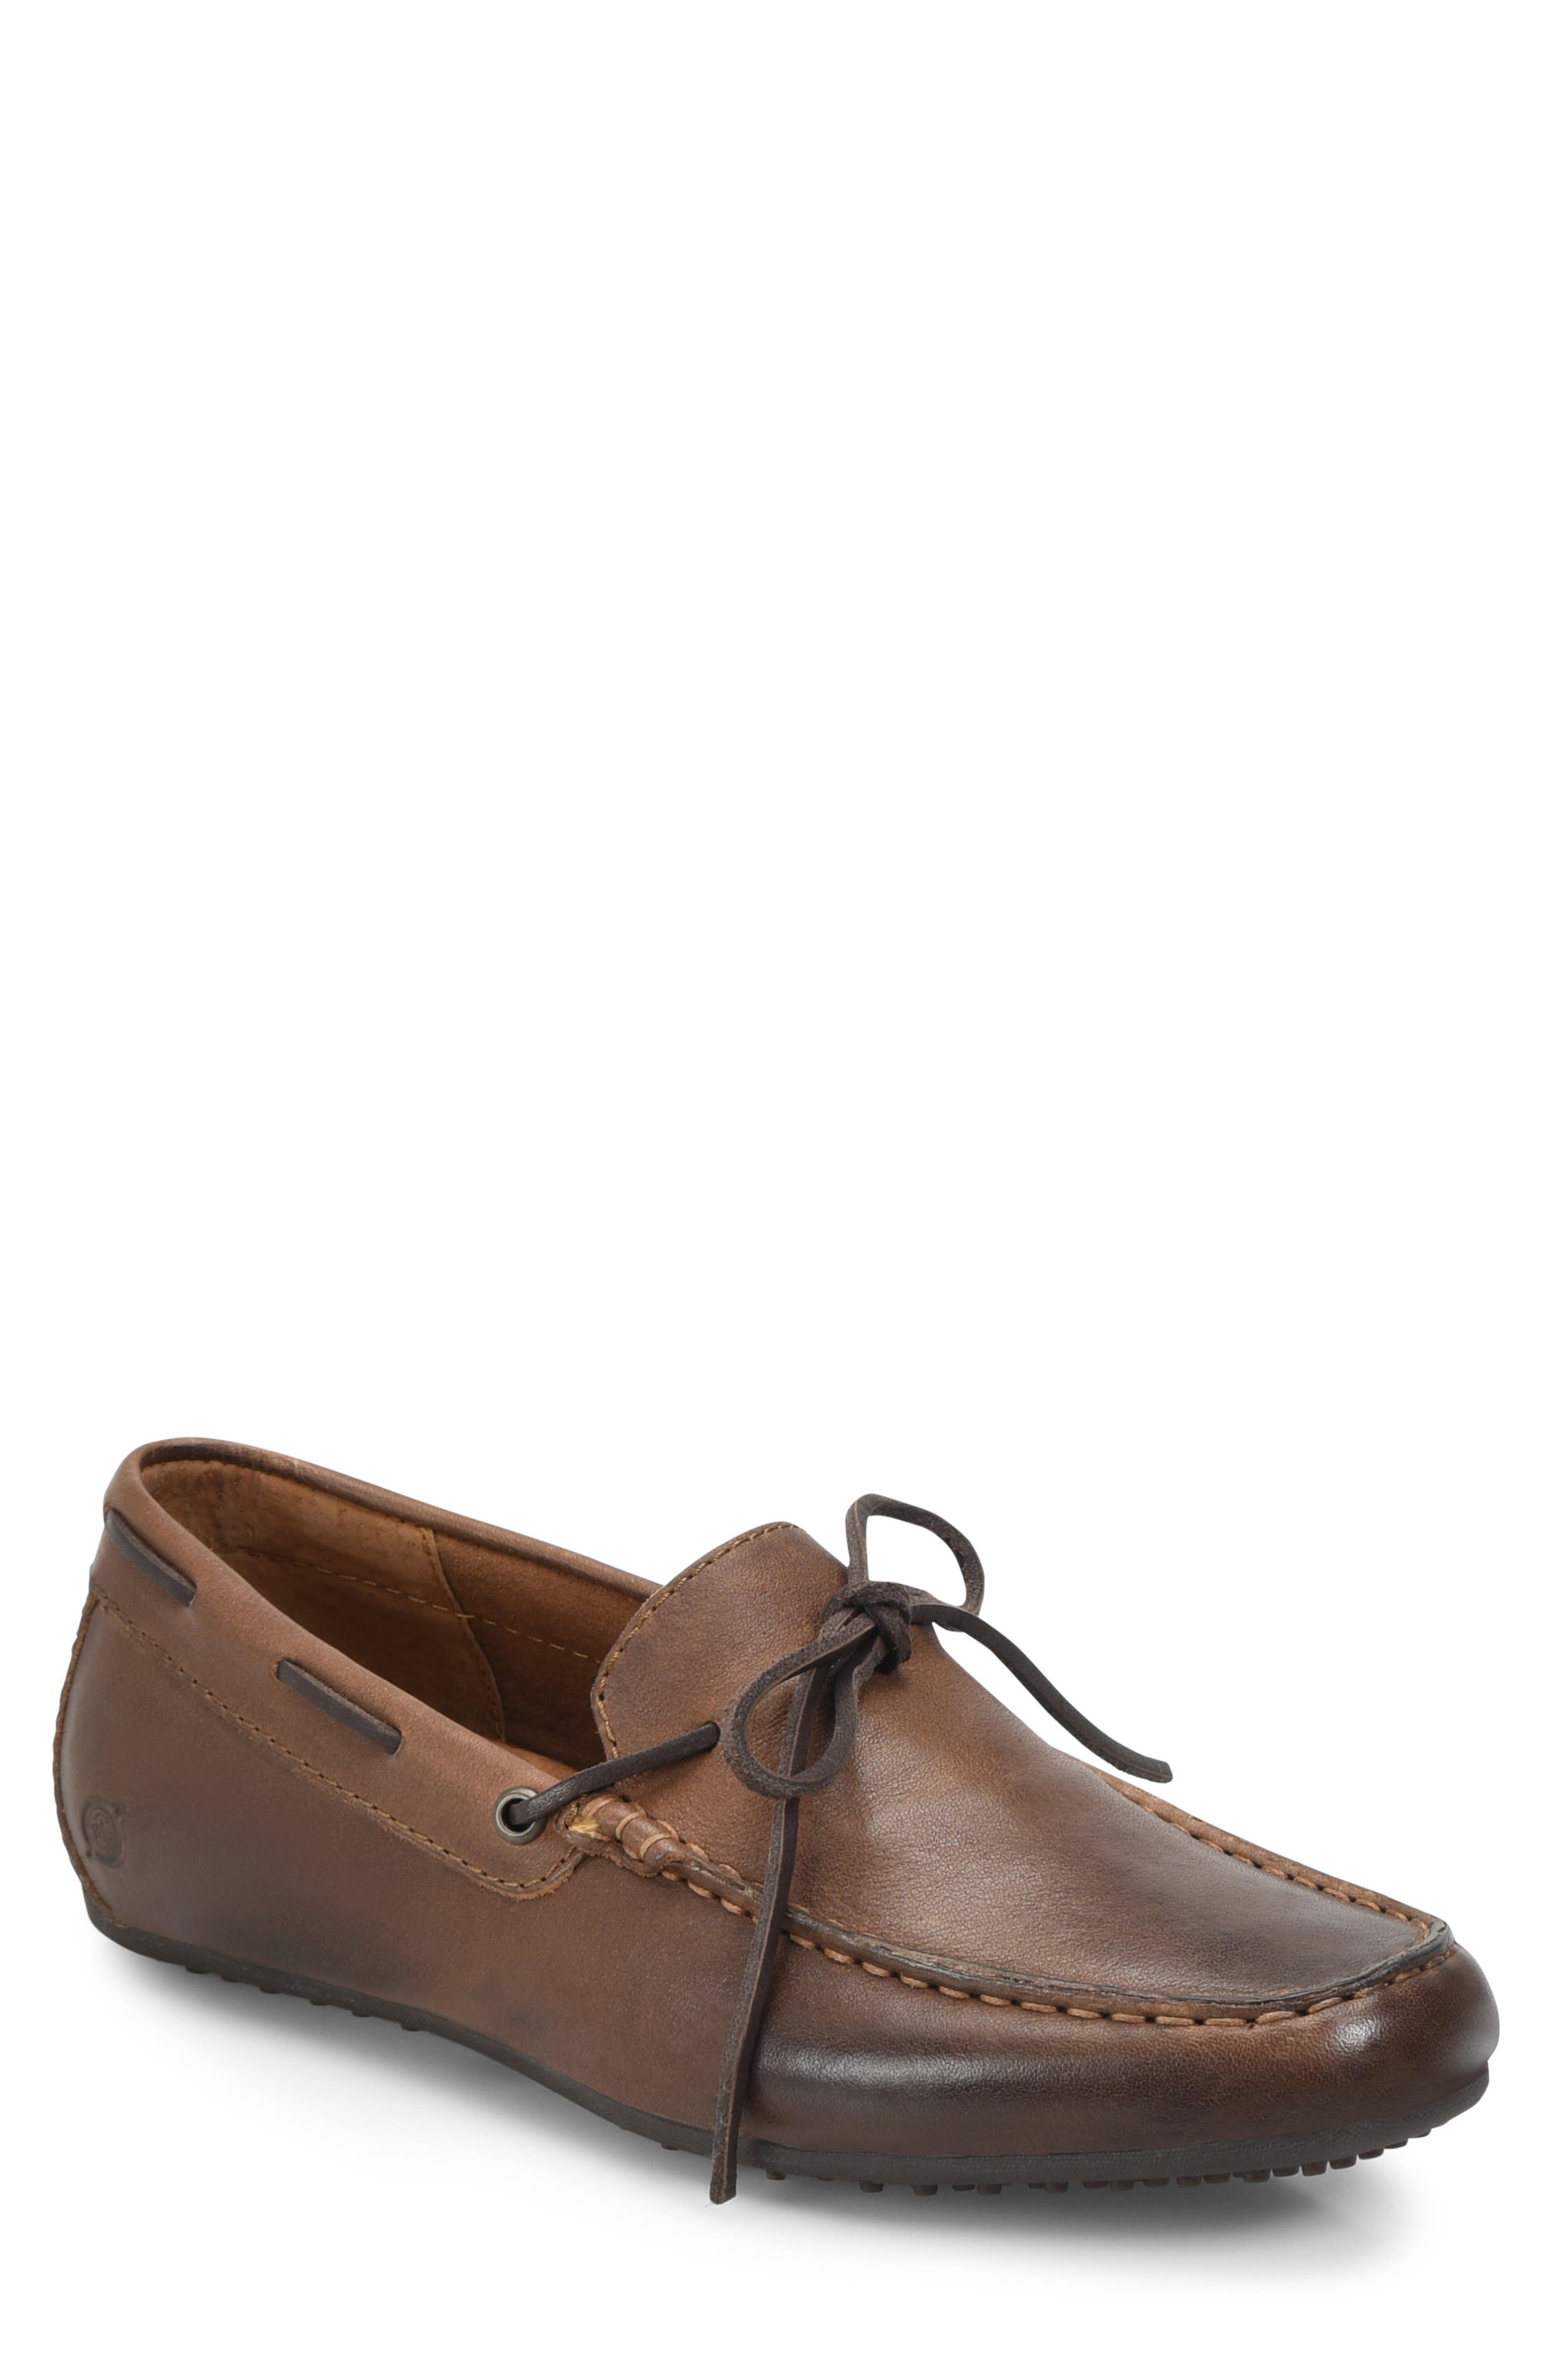 Virgo Driving Shoe,                             Main thumbnail 1, color,                             BROWN/BROWN LEATHER